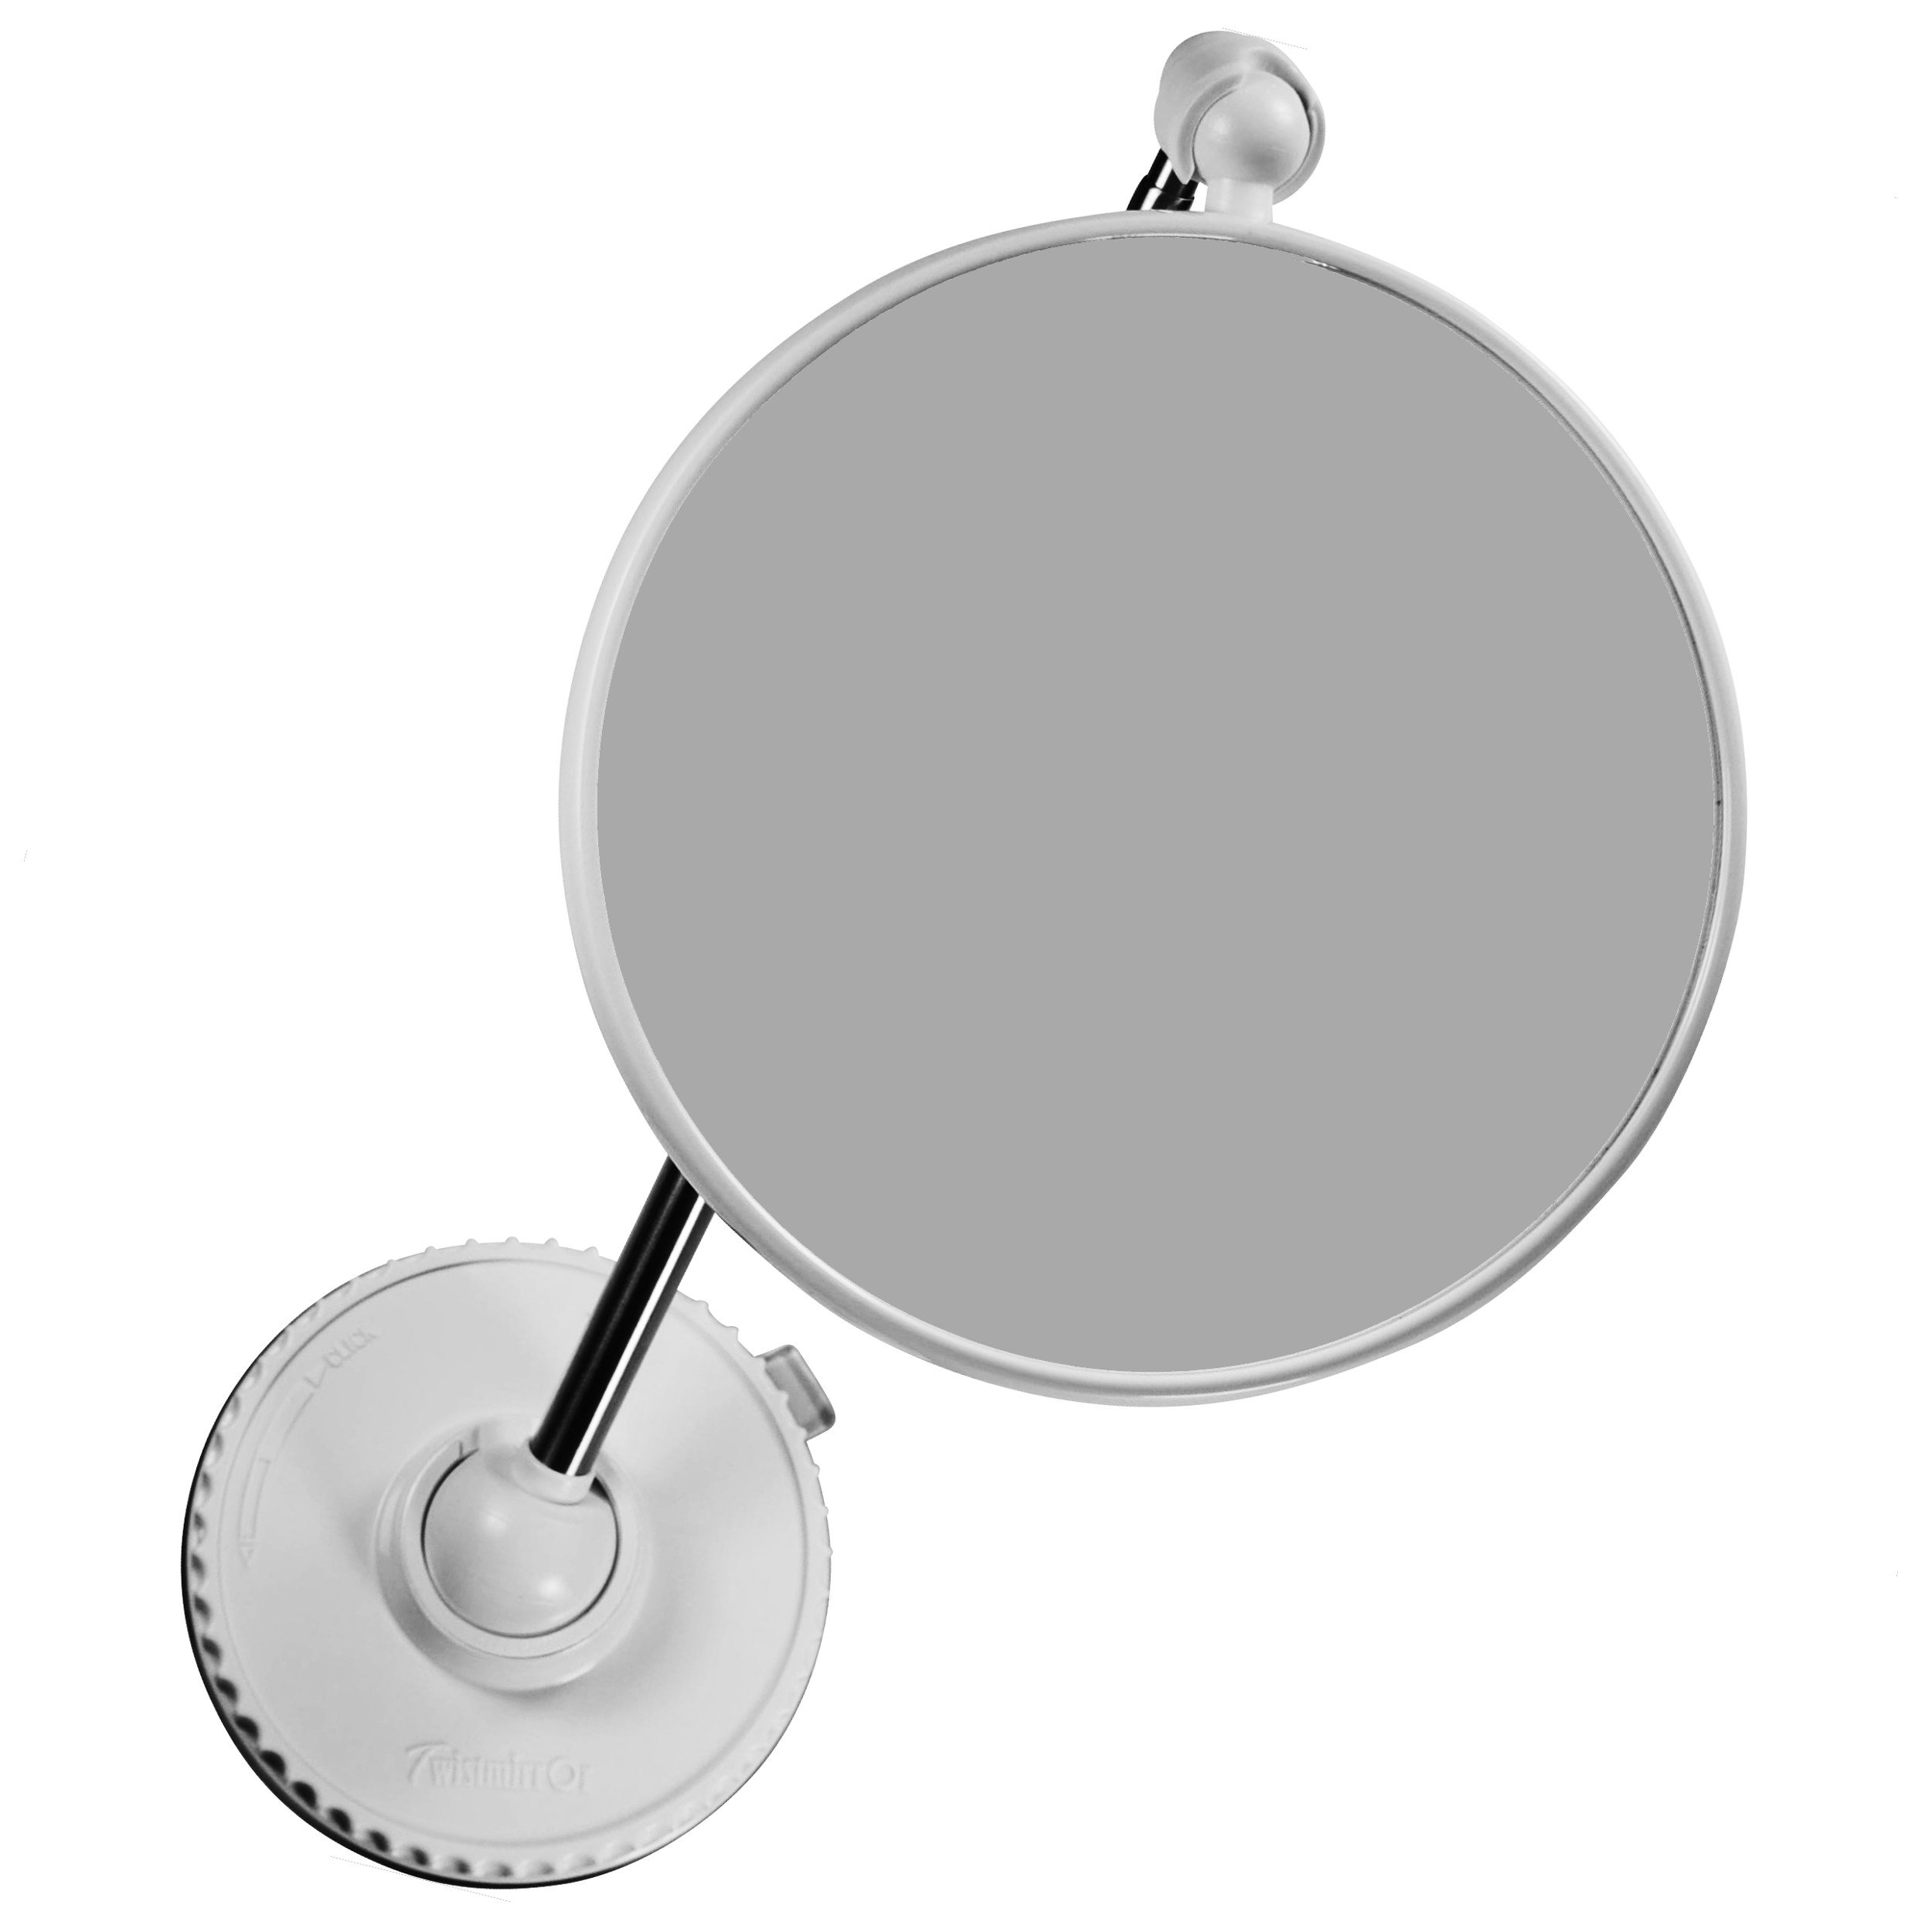 Telescoping Twistmirror 6X to 1X Suction Cup Magnifying Travel Mirror, White Base